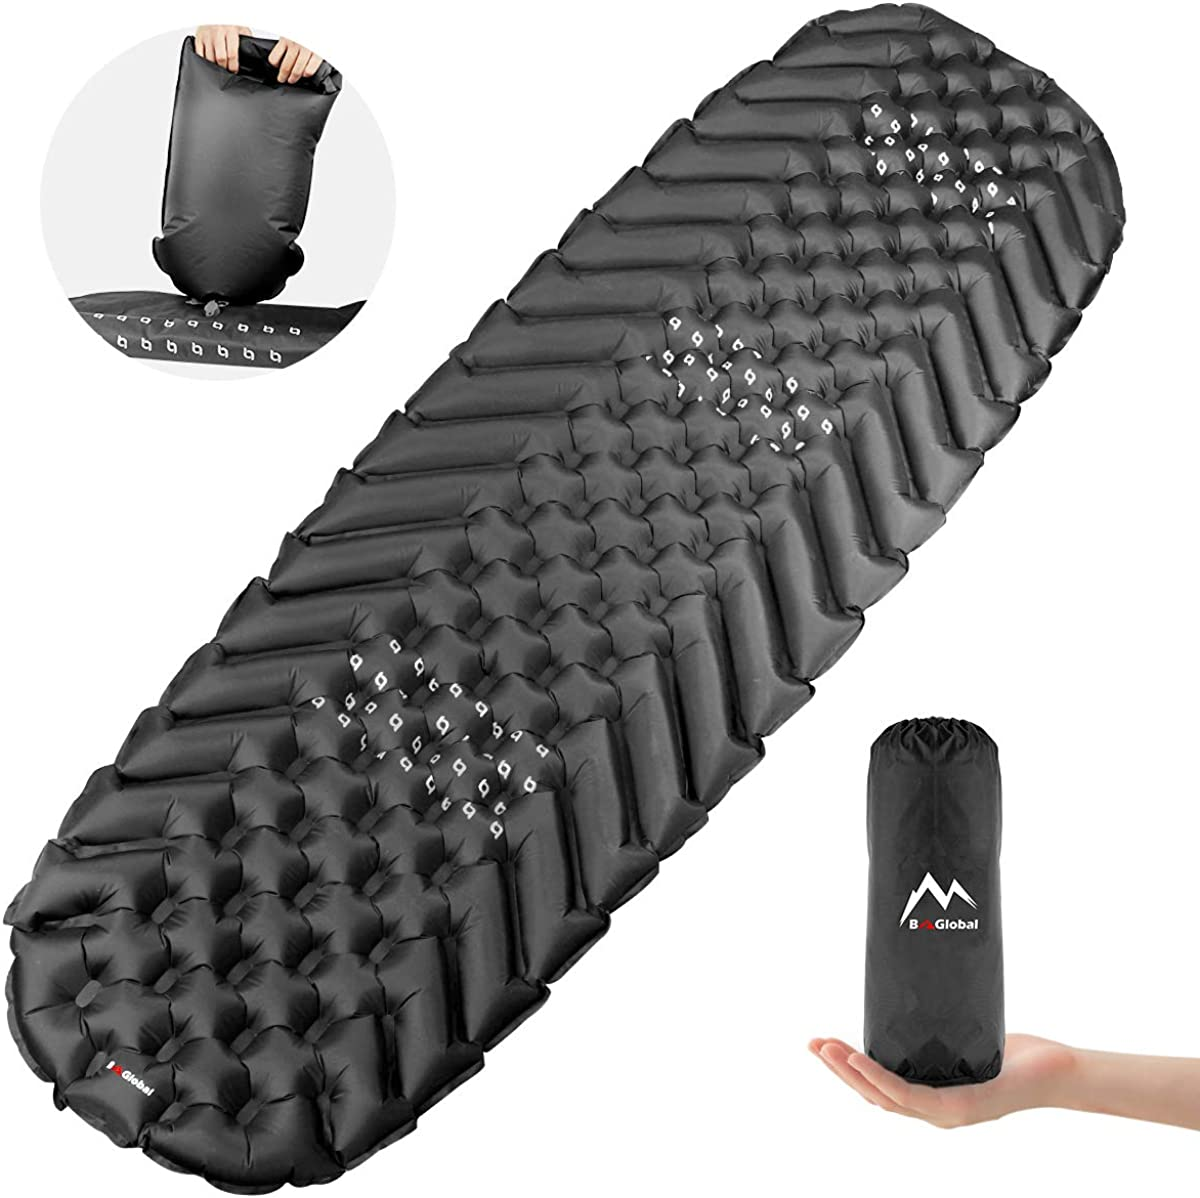 BAGLOBAL Camping Sleeping Pad for Adults, Self Inflating Camping Mat with Inflated Bag and Two-Way Valve, Lightweight, Anti-Slip, Compact Waterproof Best Sleeping Mat for Backpacking Hiking Tent